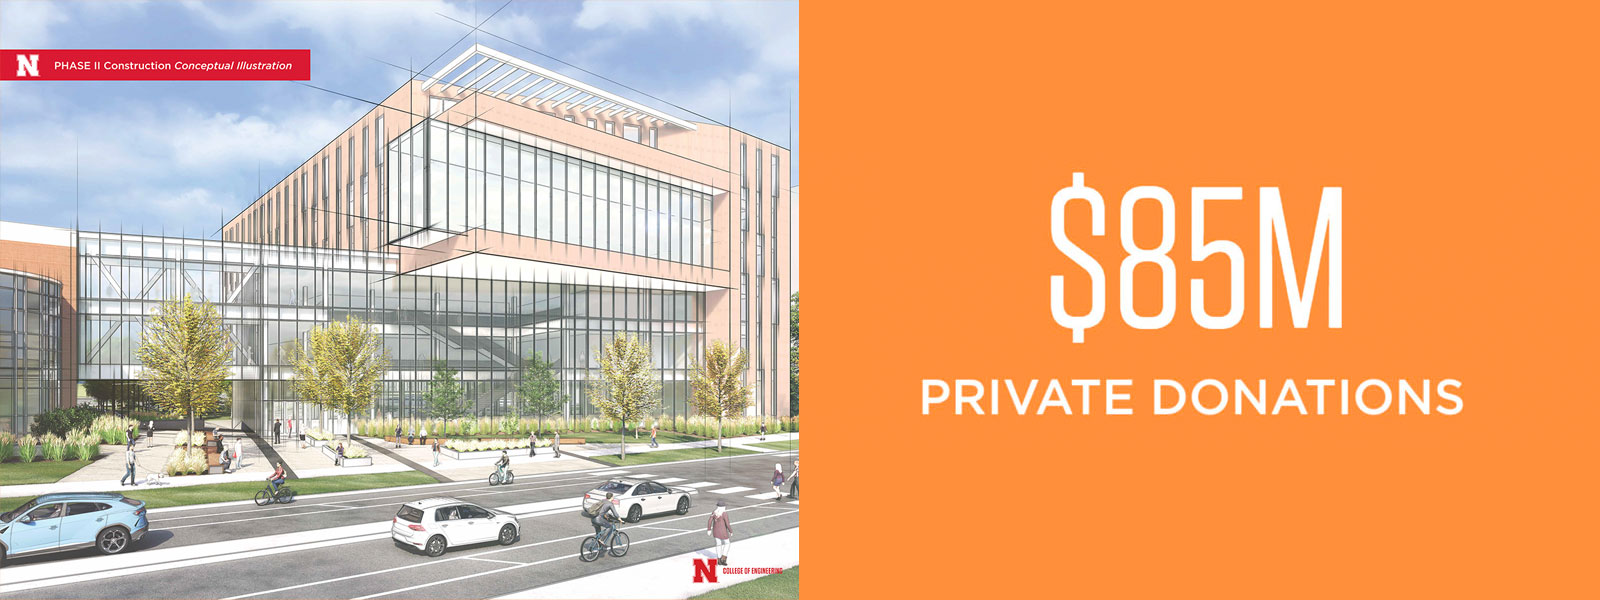 Phase 2- New Building: $85 million from private donations